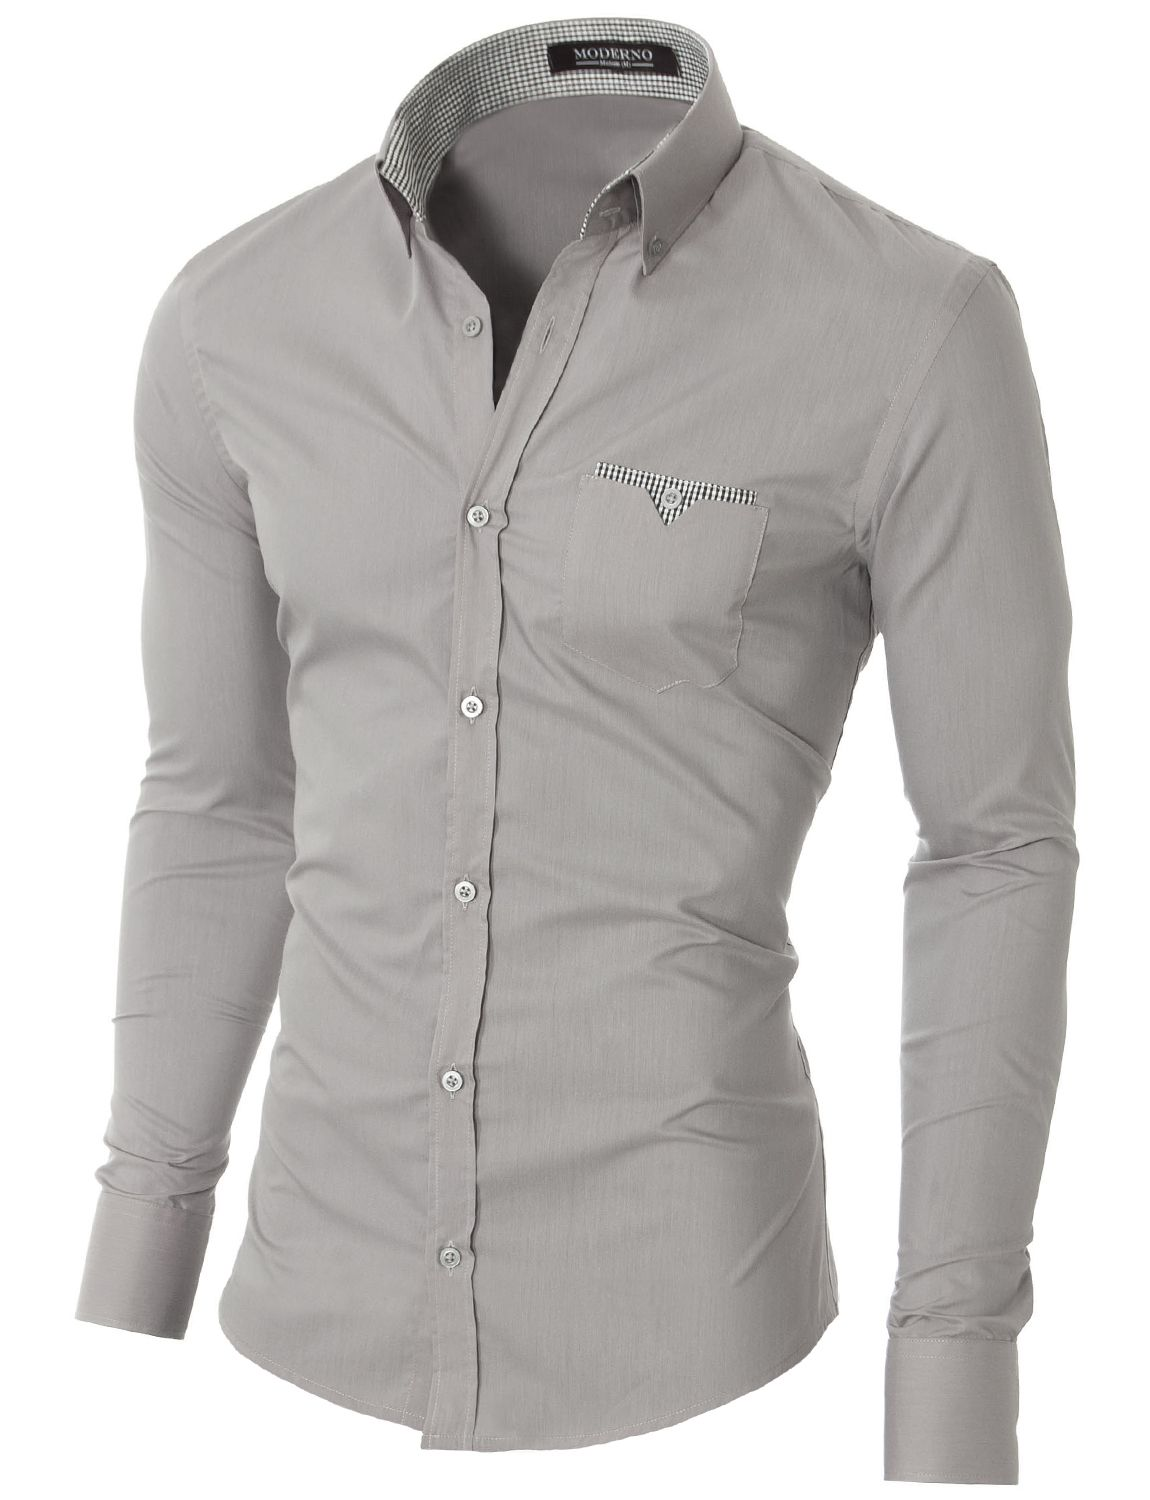 ef527bac672 MODERNO Mens Slim Fit Button-Down Shirt (VGD063LS) Gray. FREE worldwide  shipping! 30 days return policy